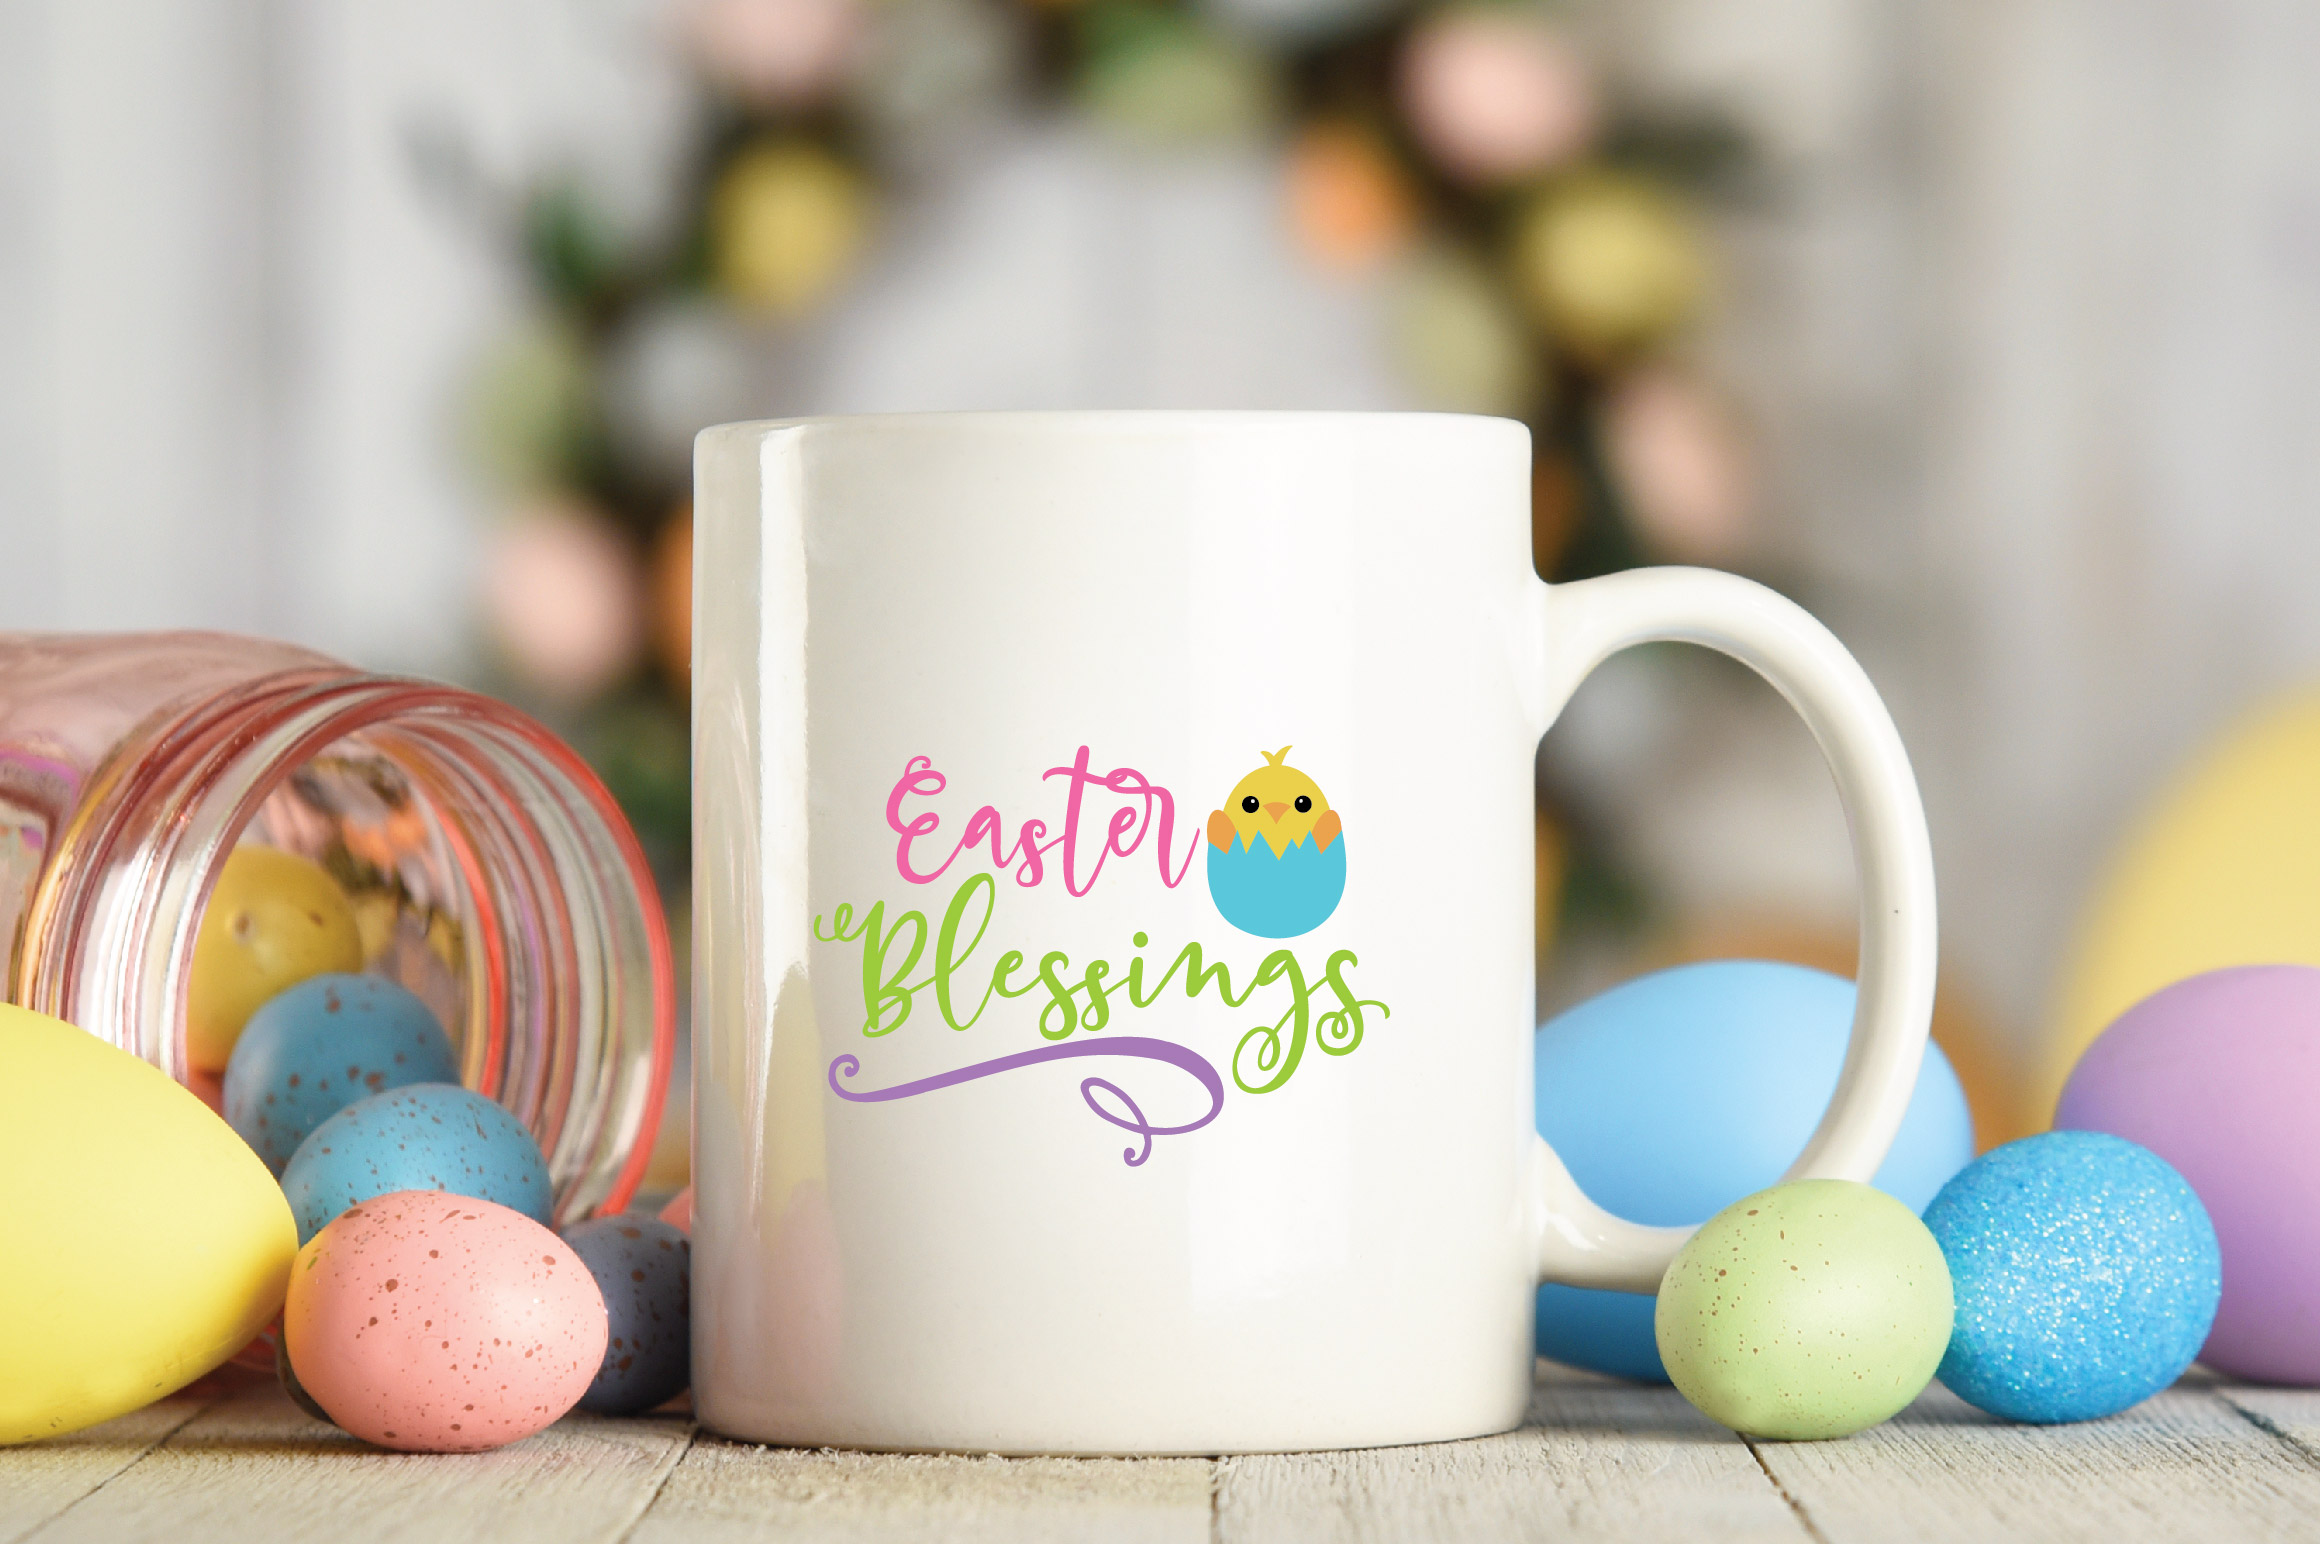 Easter SVG Cut File - Easter Blessings SVG DXF EPS PNG AI example image 5